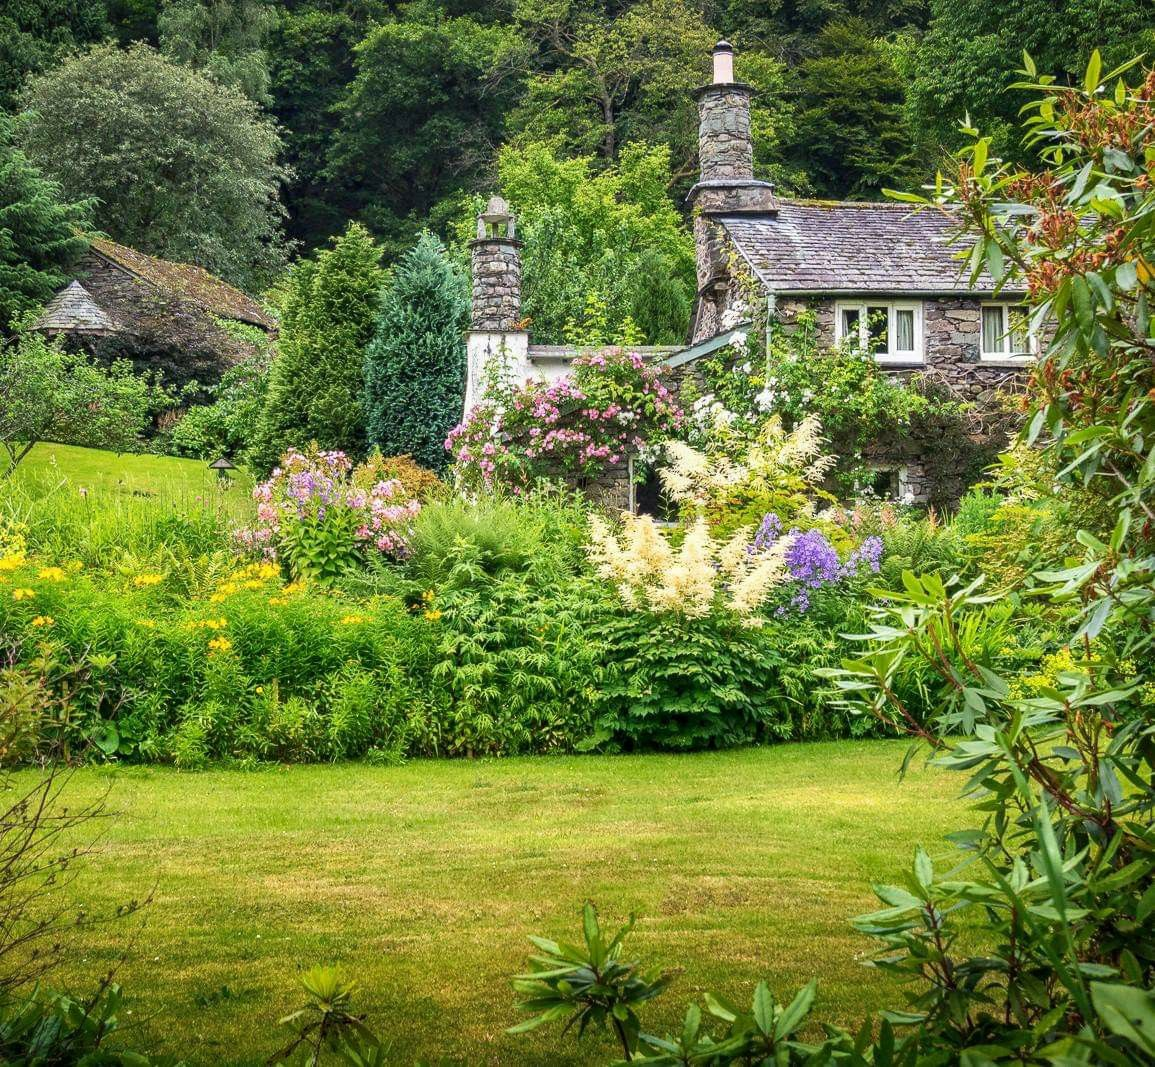 The Beautiful Gardens Of A Stone Cottage At Grasmere In